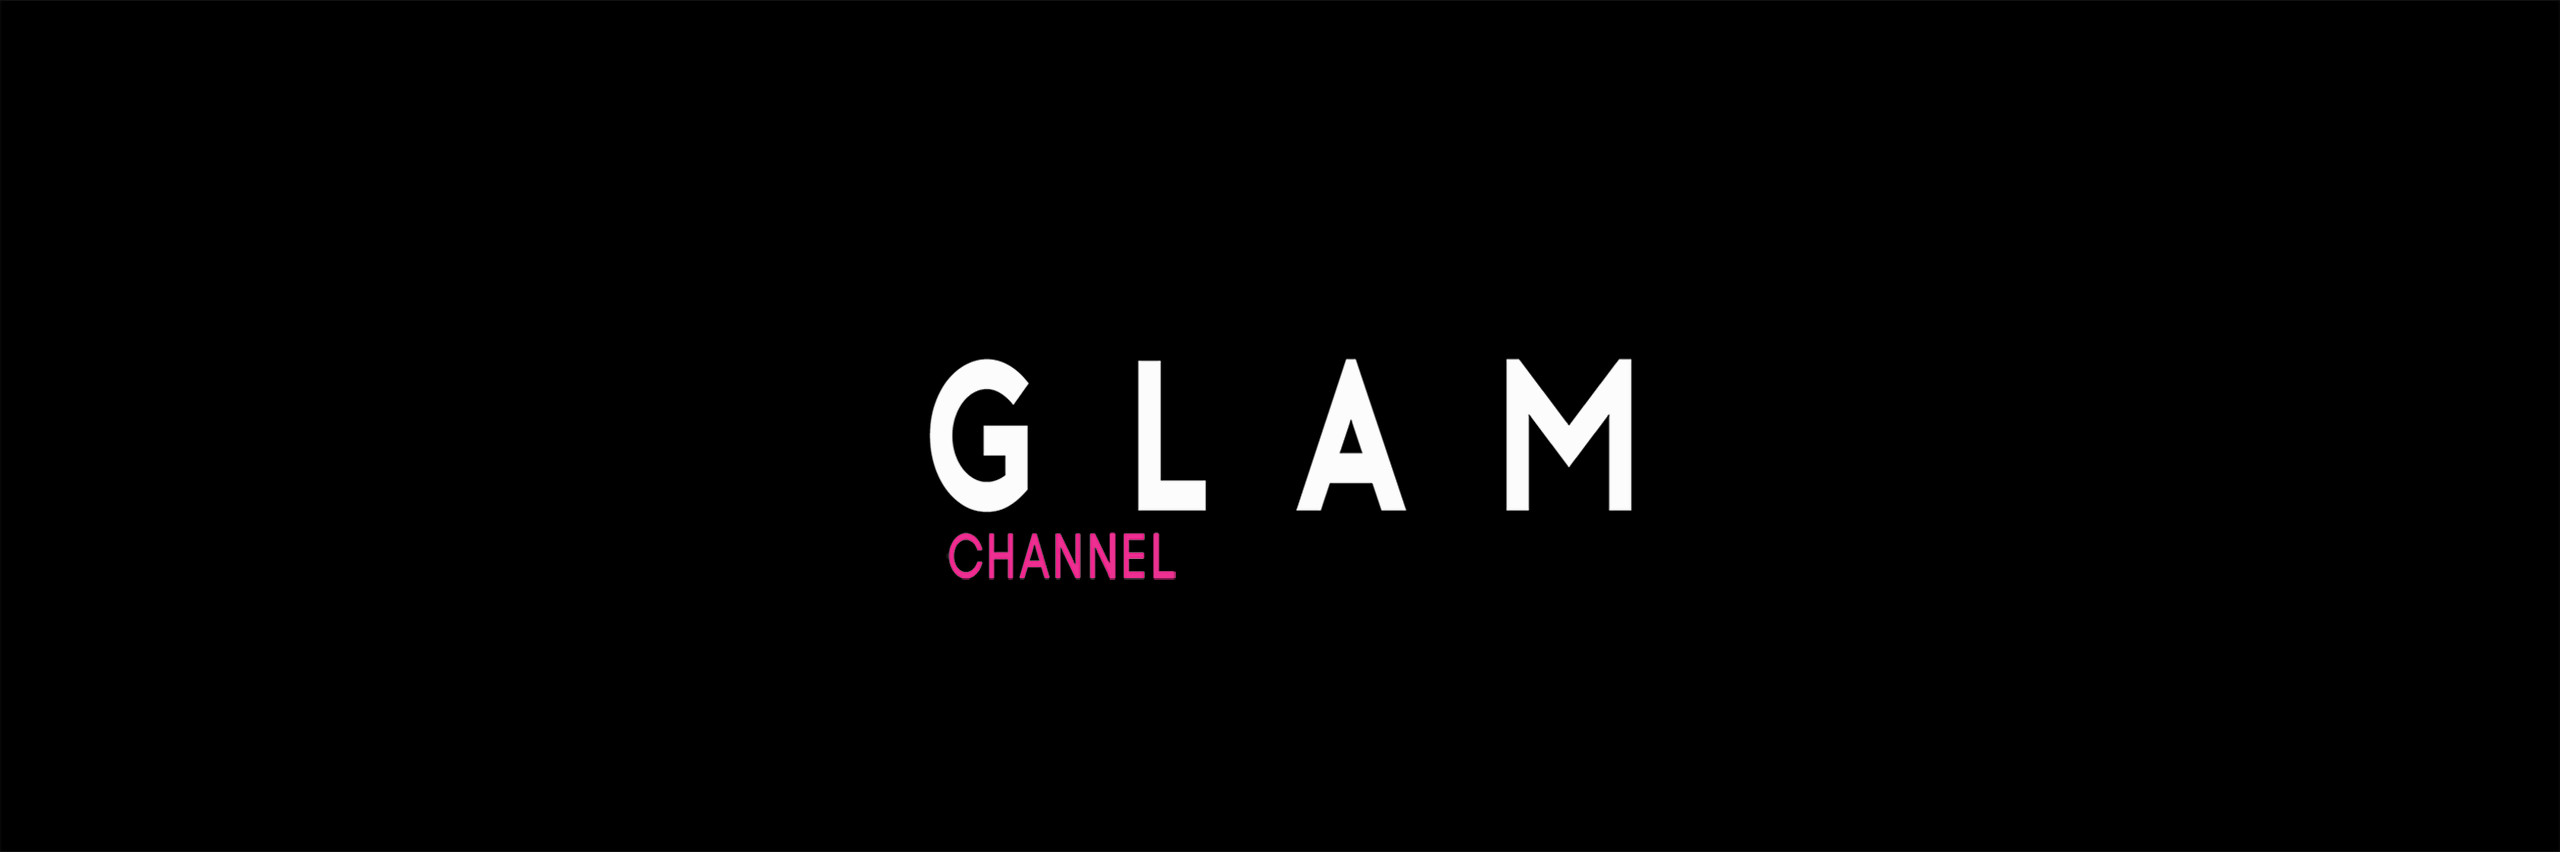 Glamchannel